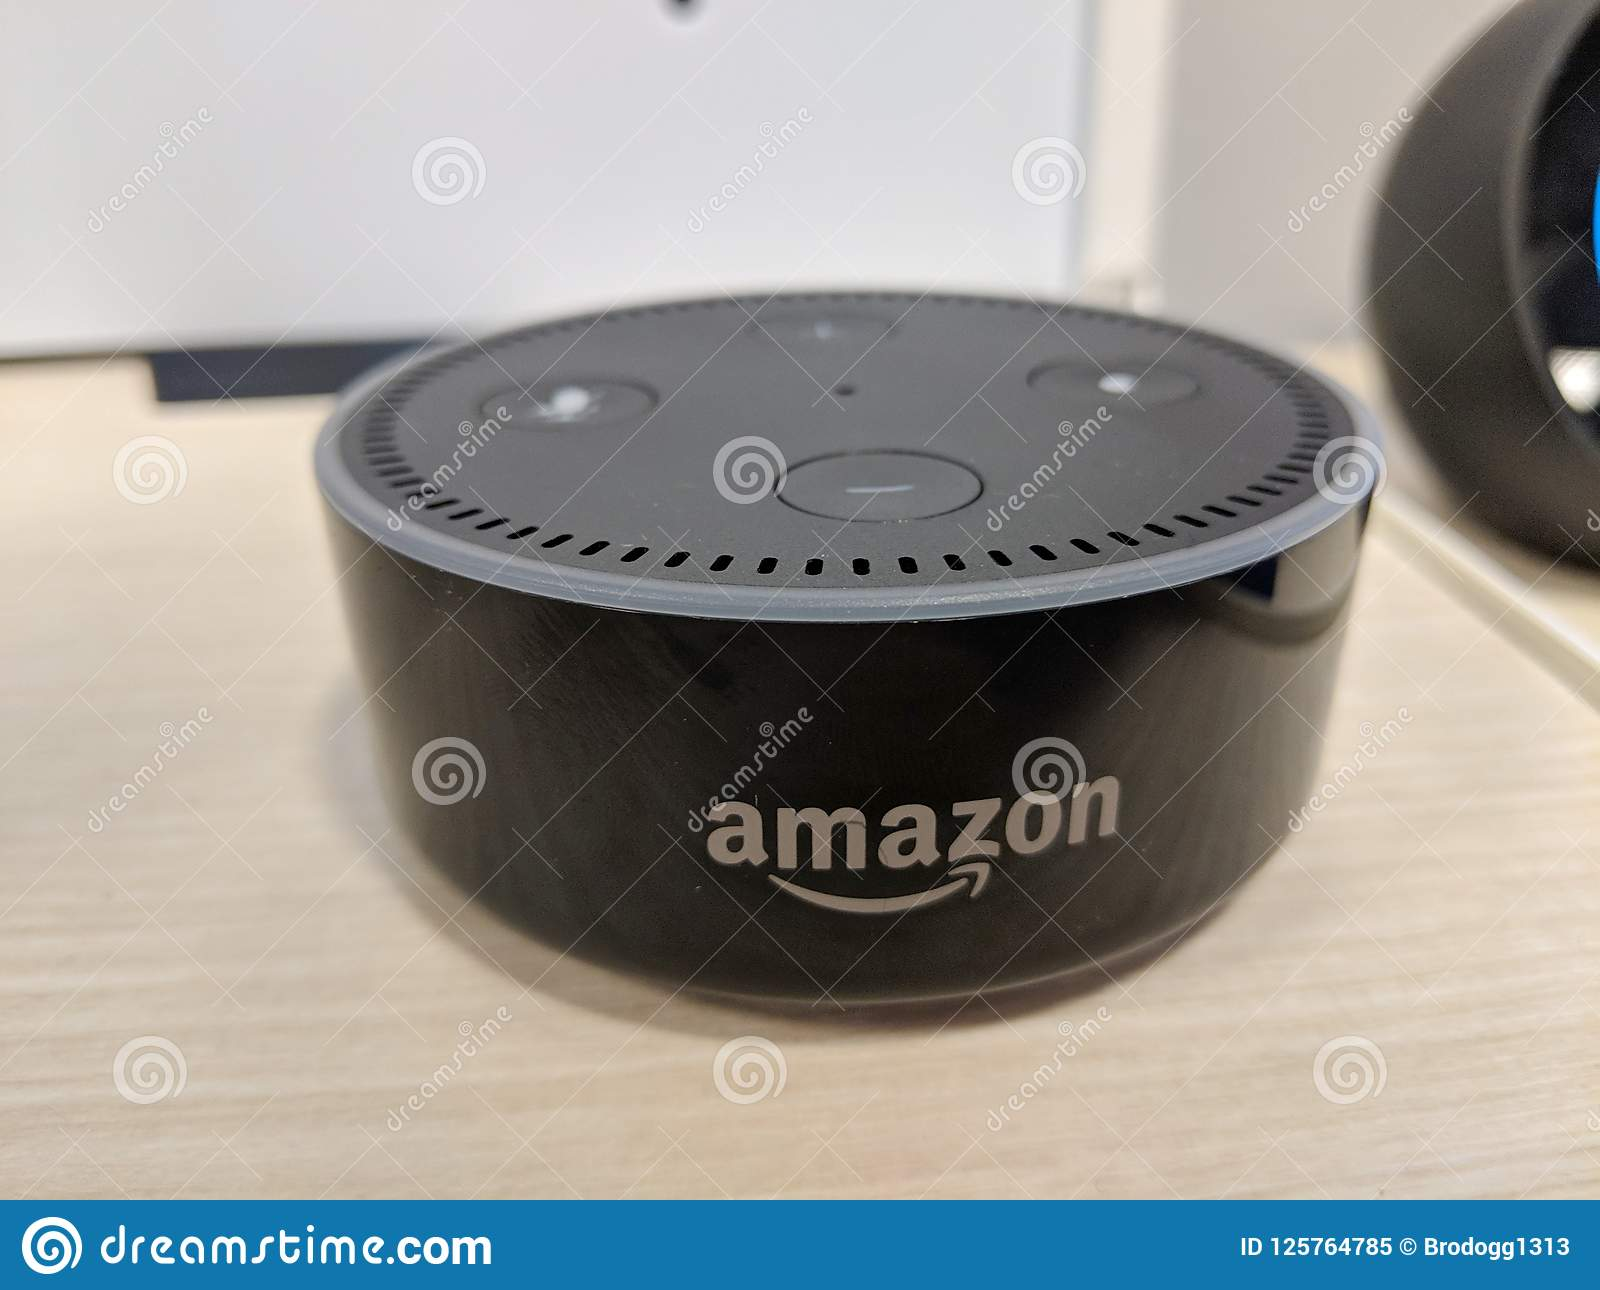 Alexa Dot Echo Dot 2nd Generation Smart Speaker With Alexa Black On